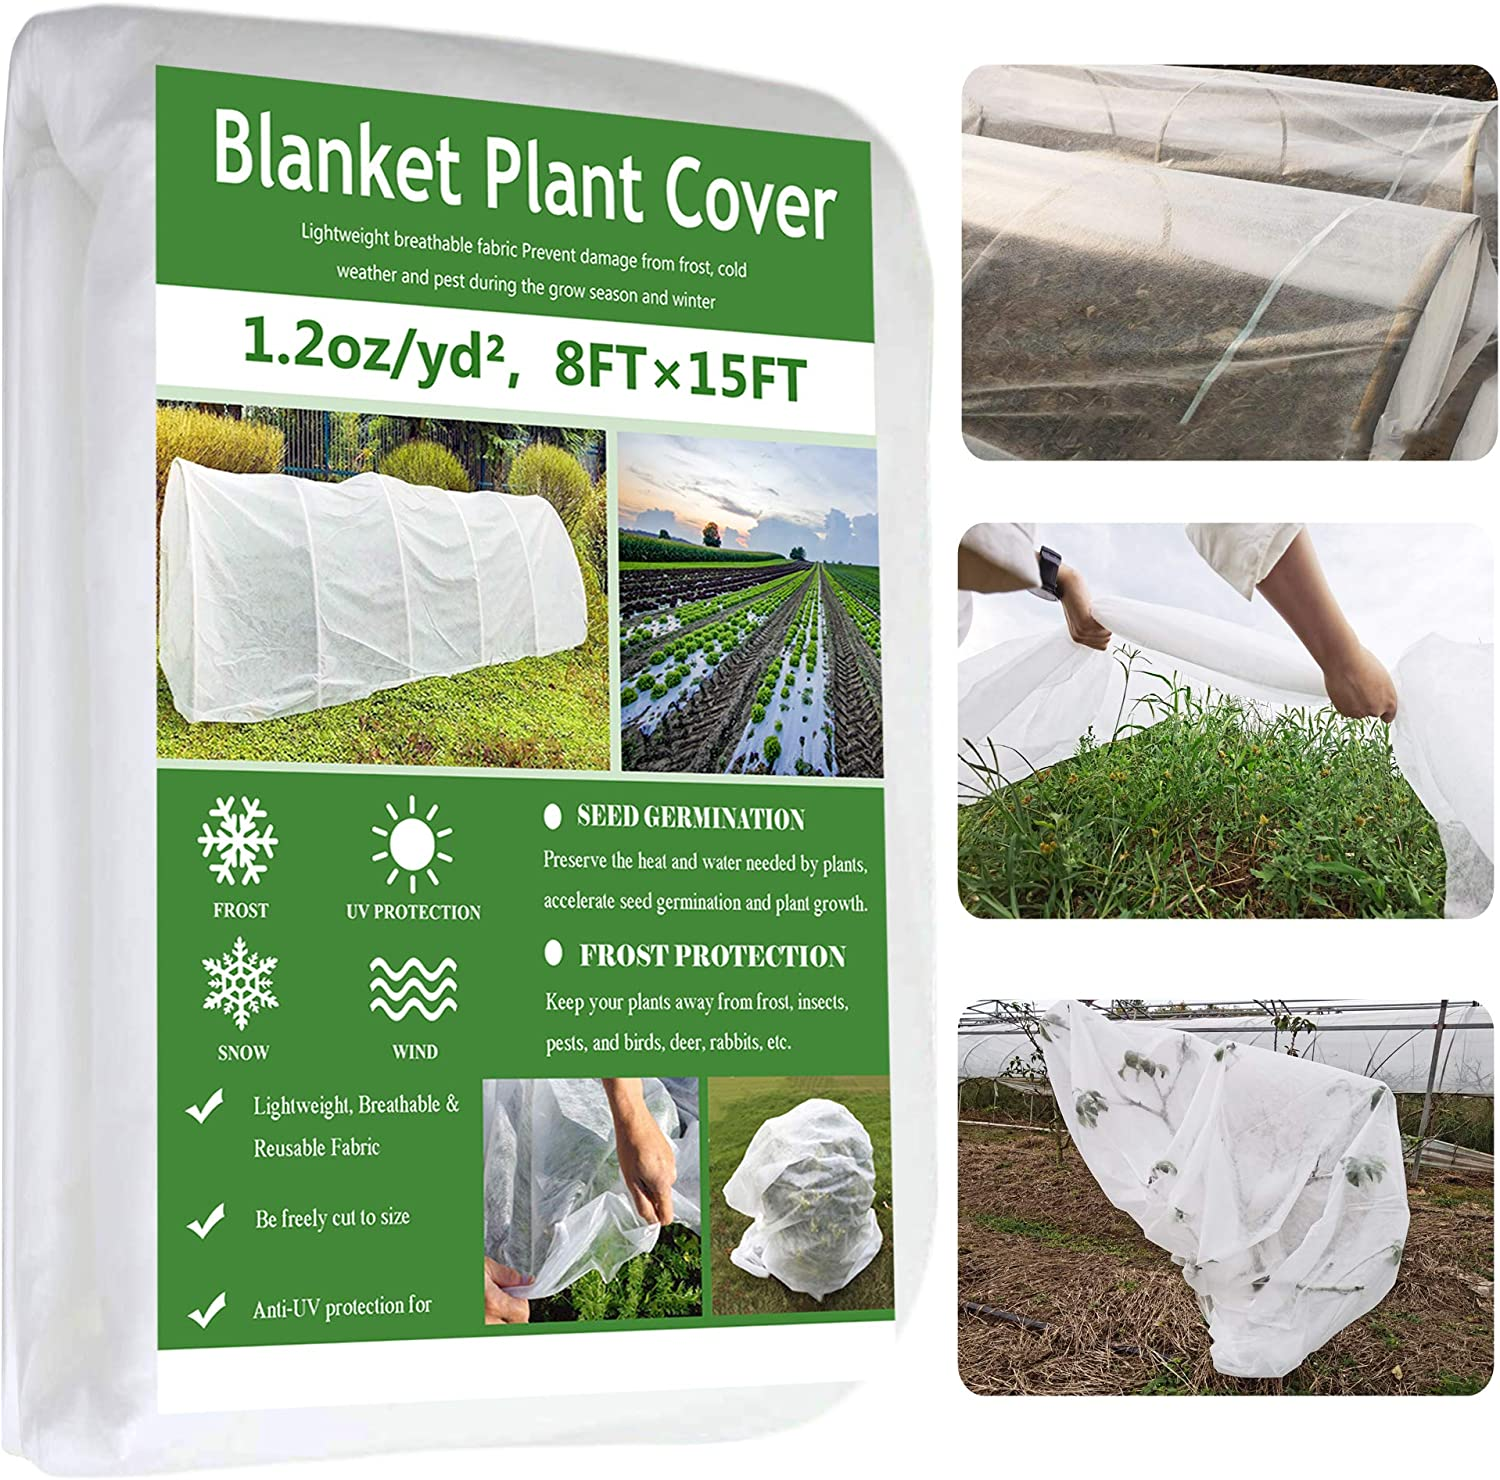 Garden EXPERT Plant Covers Freeze Protection Floating Row Cover Thickened 1.2oz Fabric Frost Cloth Plant Blanket for Plants & Vegetables in Winter(8FTx15FT)